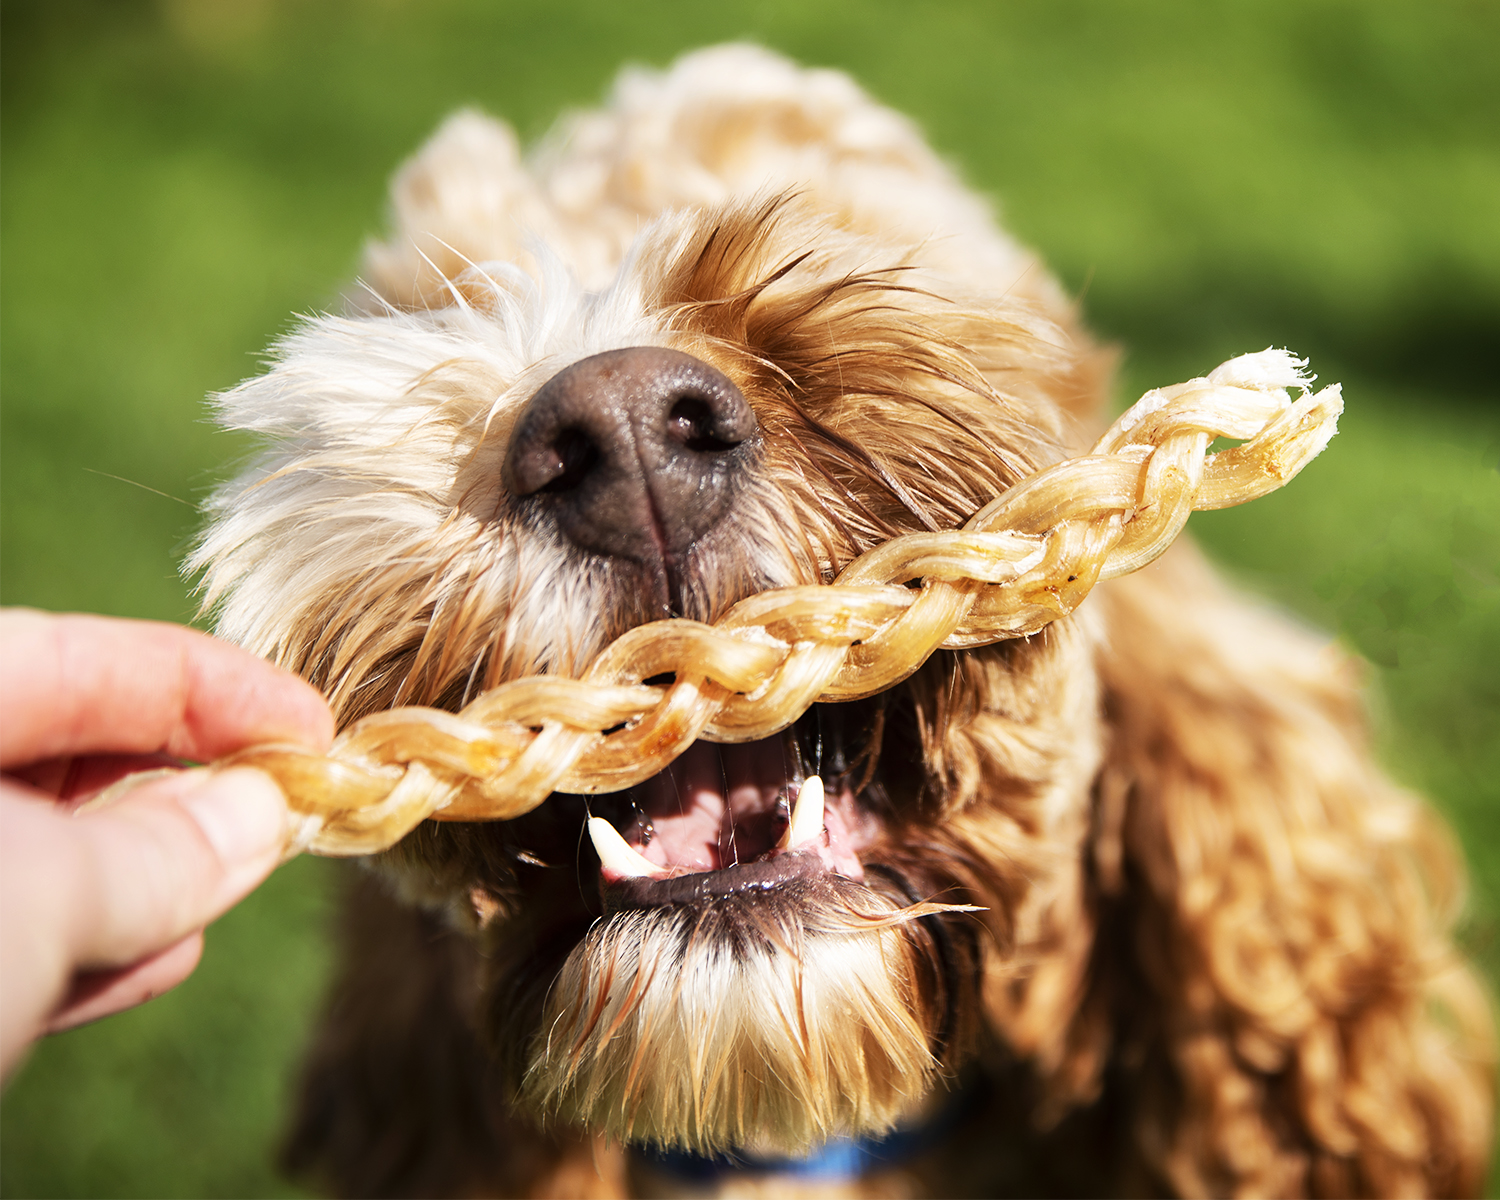 ostrich chew for dogs, braided ostrich tendon, natural dog chew, long lasting dog chew